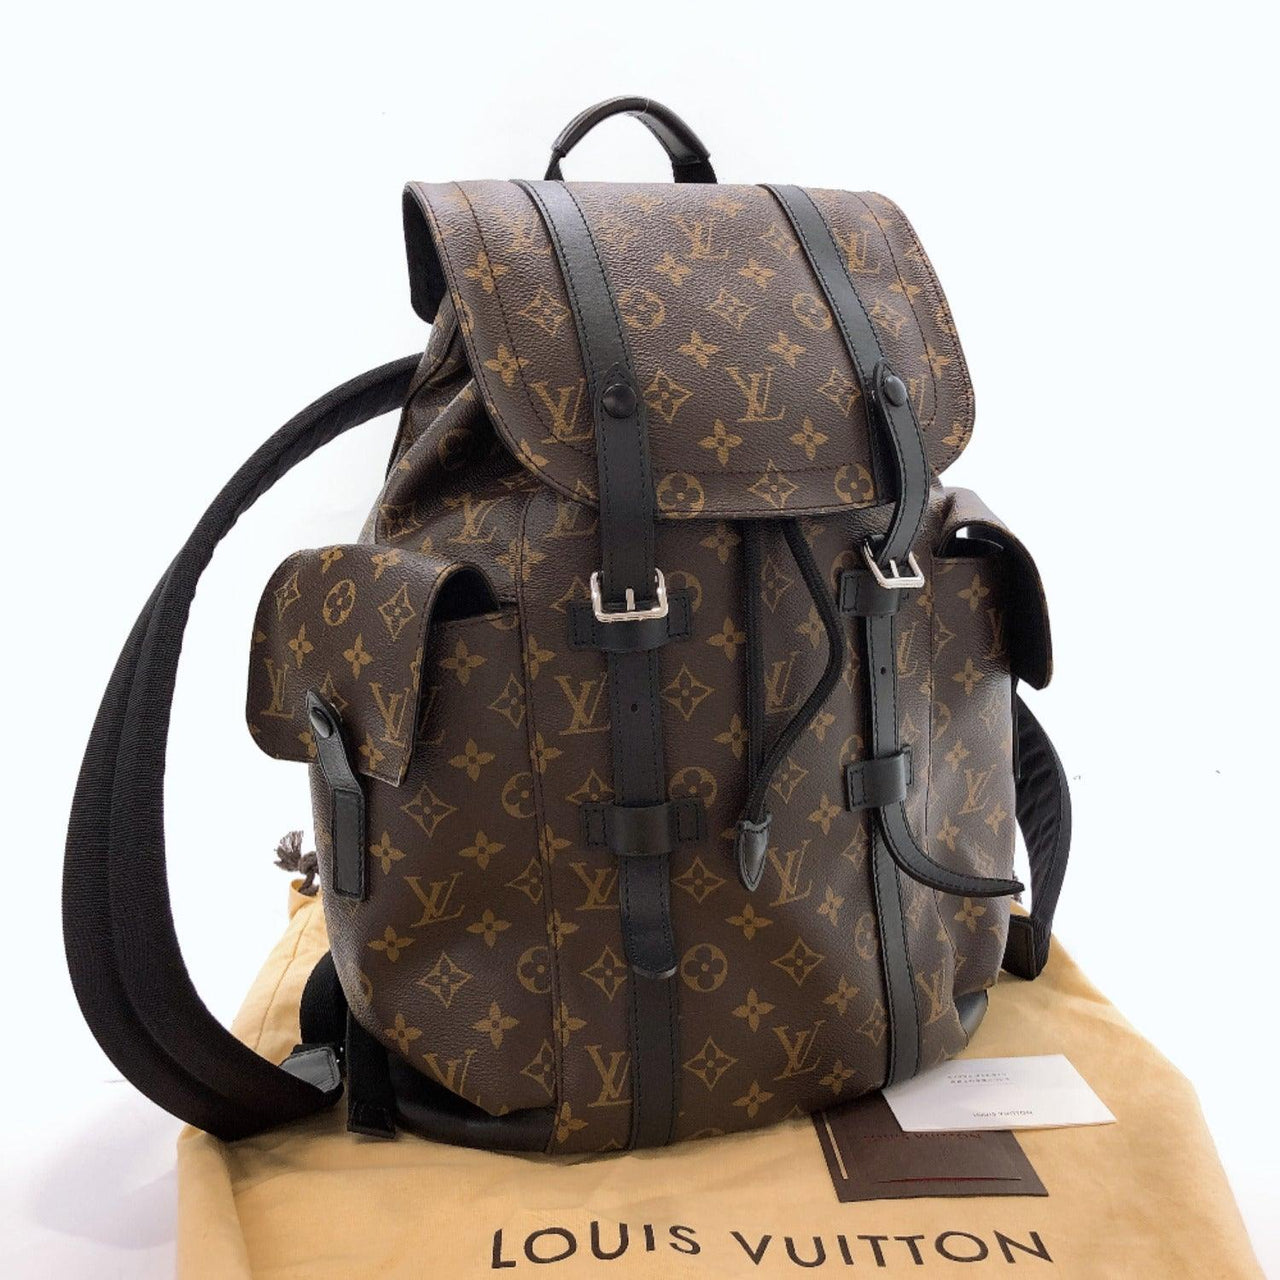 LOUIS VUITTON Backpack Daypack M43735 Christopher PM Monogram macacer Brown mens Used